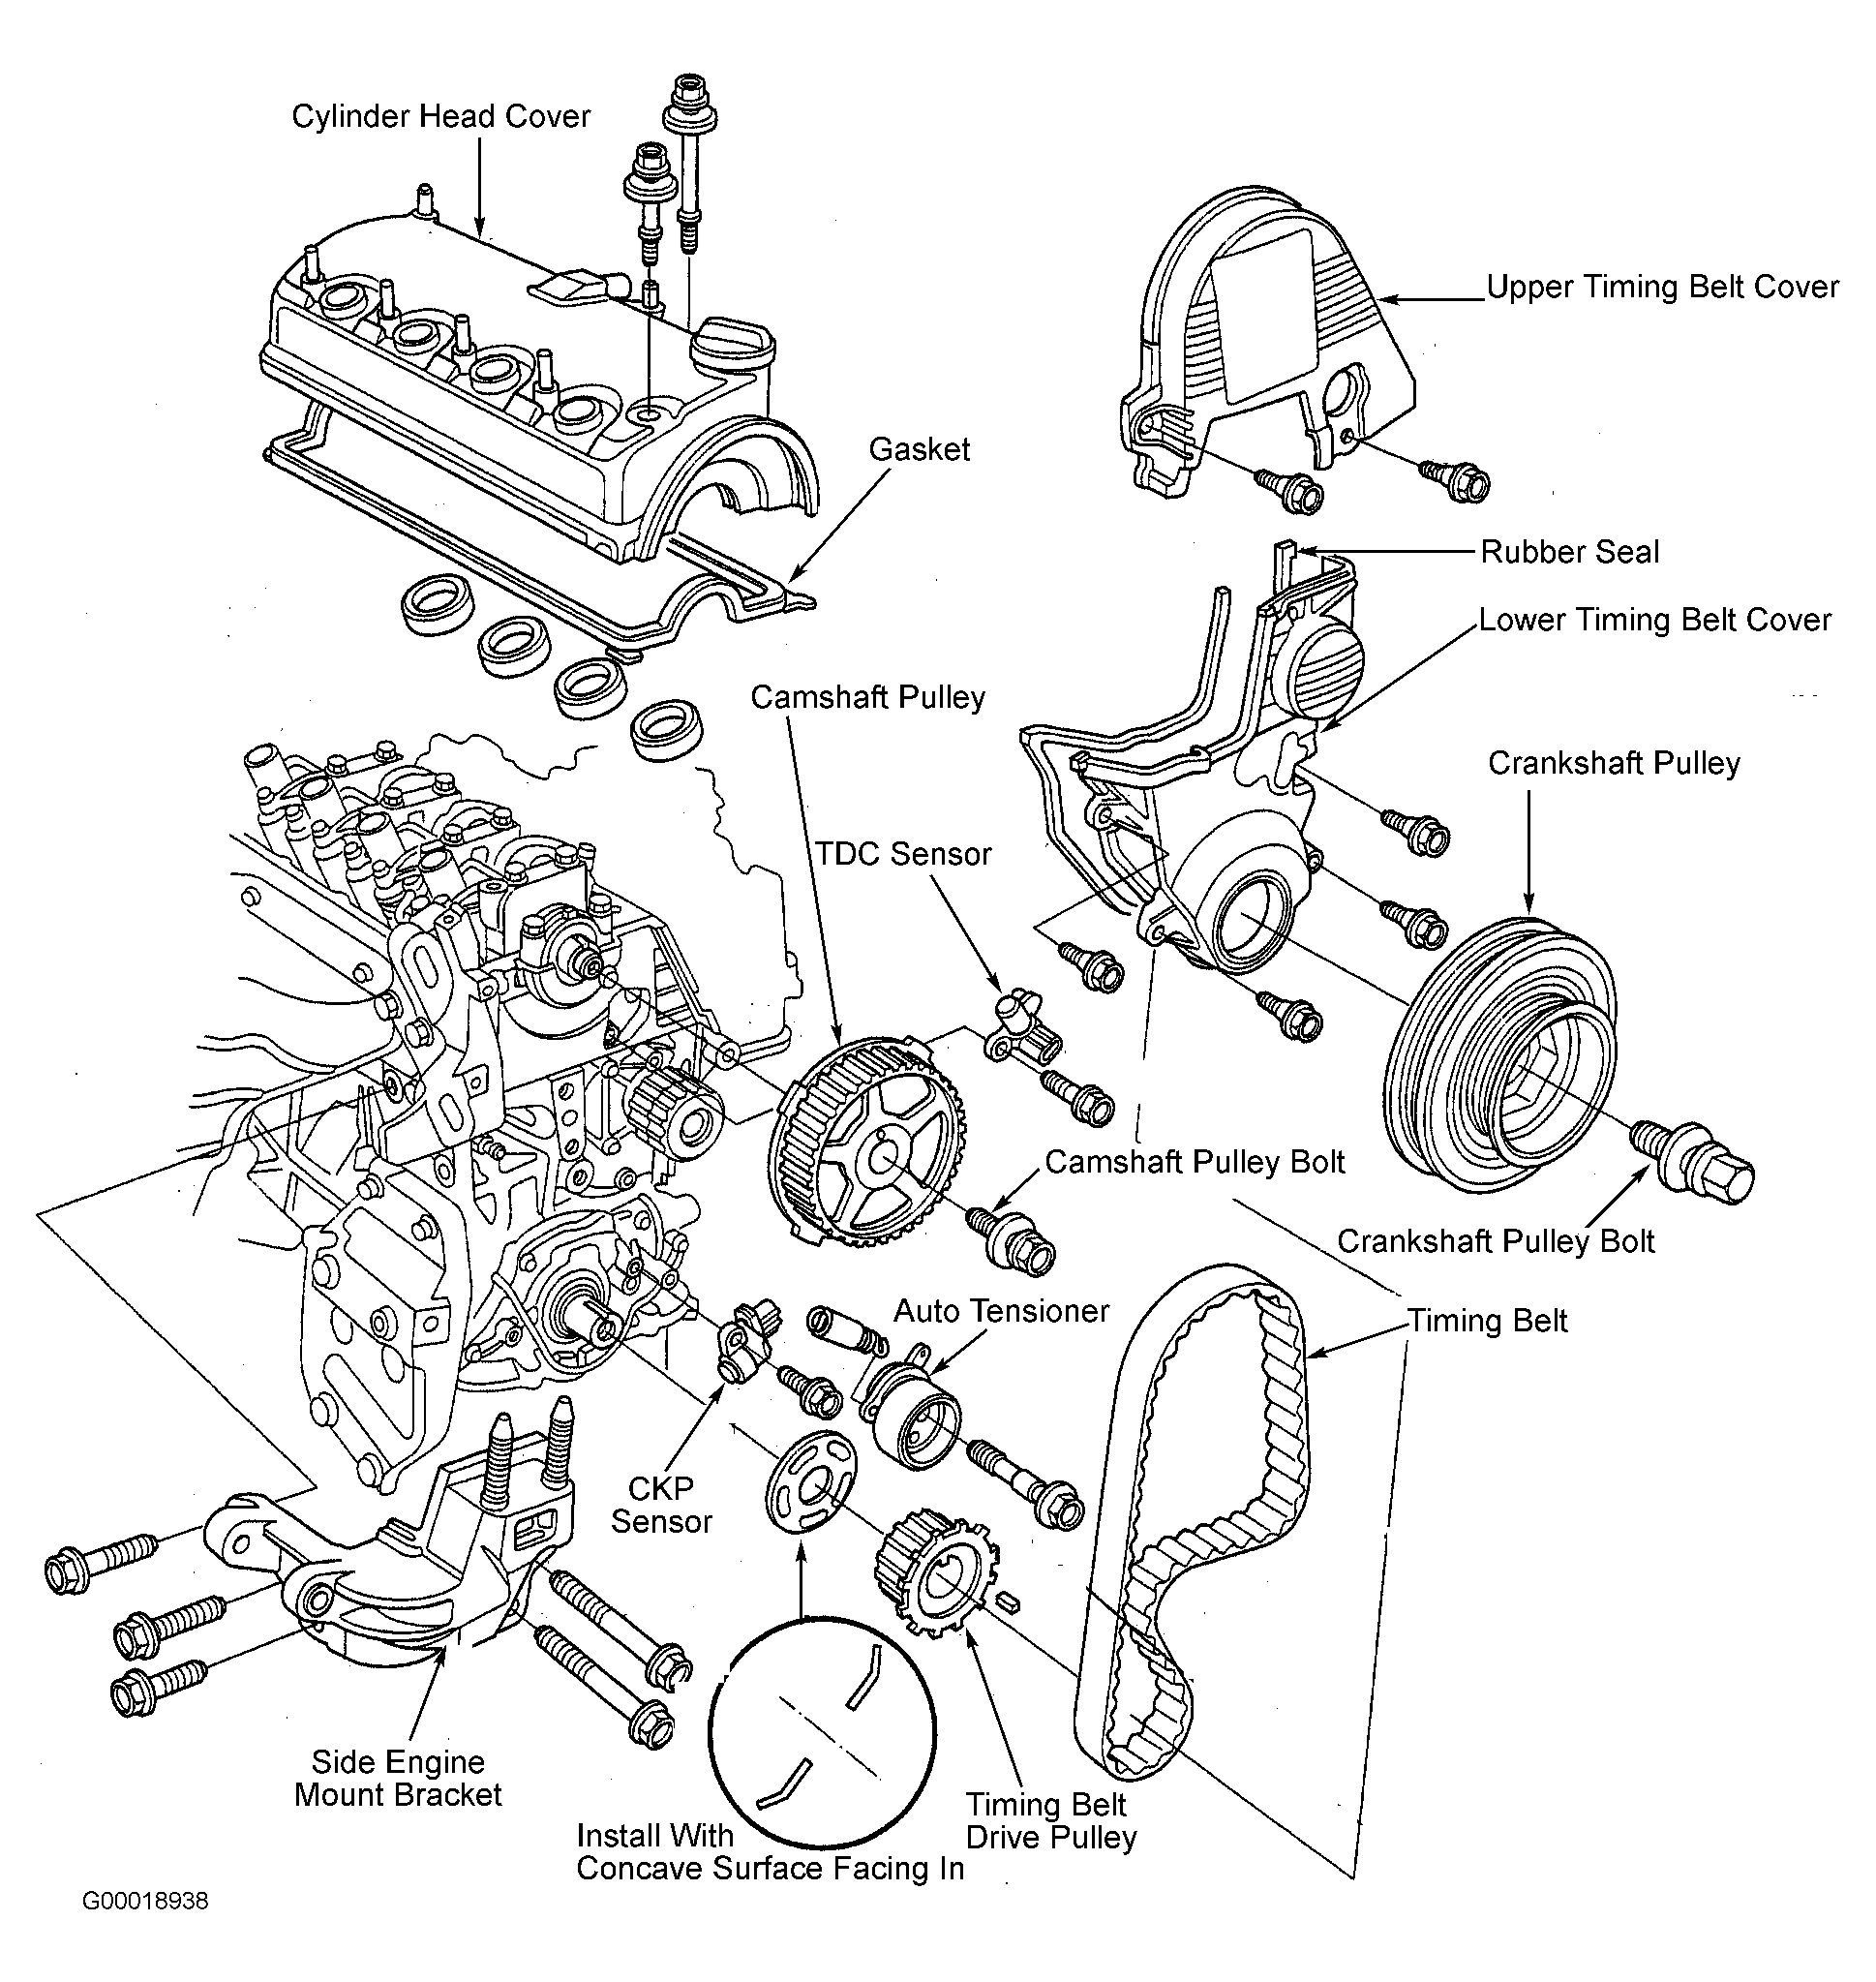 Honda Crv Engine Diagram Unlimited Wiring Diagram 2004 Honda CR-V Engine  Diagram 2003 Honda Crv Engine Diagram #3 in 2020 | Honda crv, Honda, Diagram